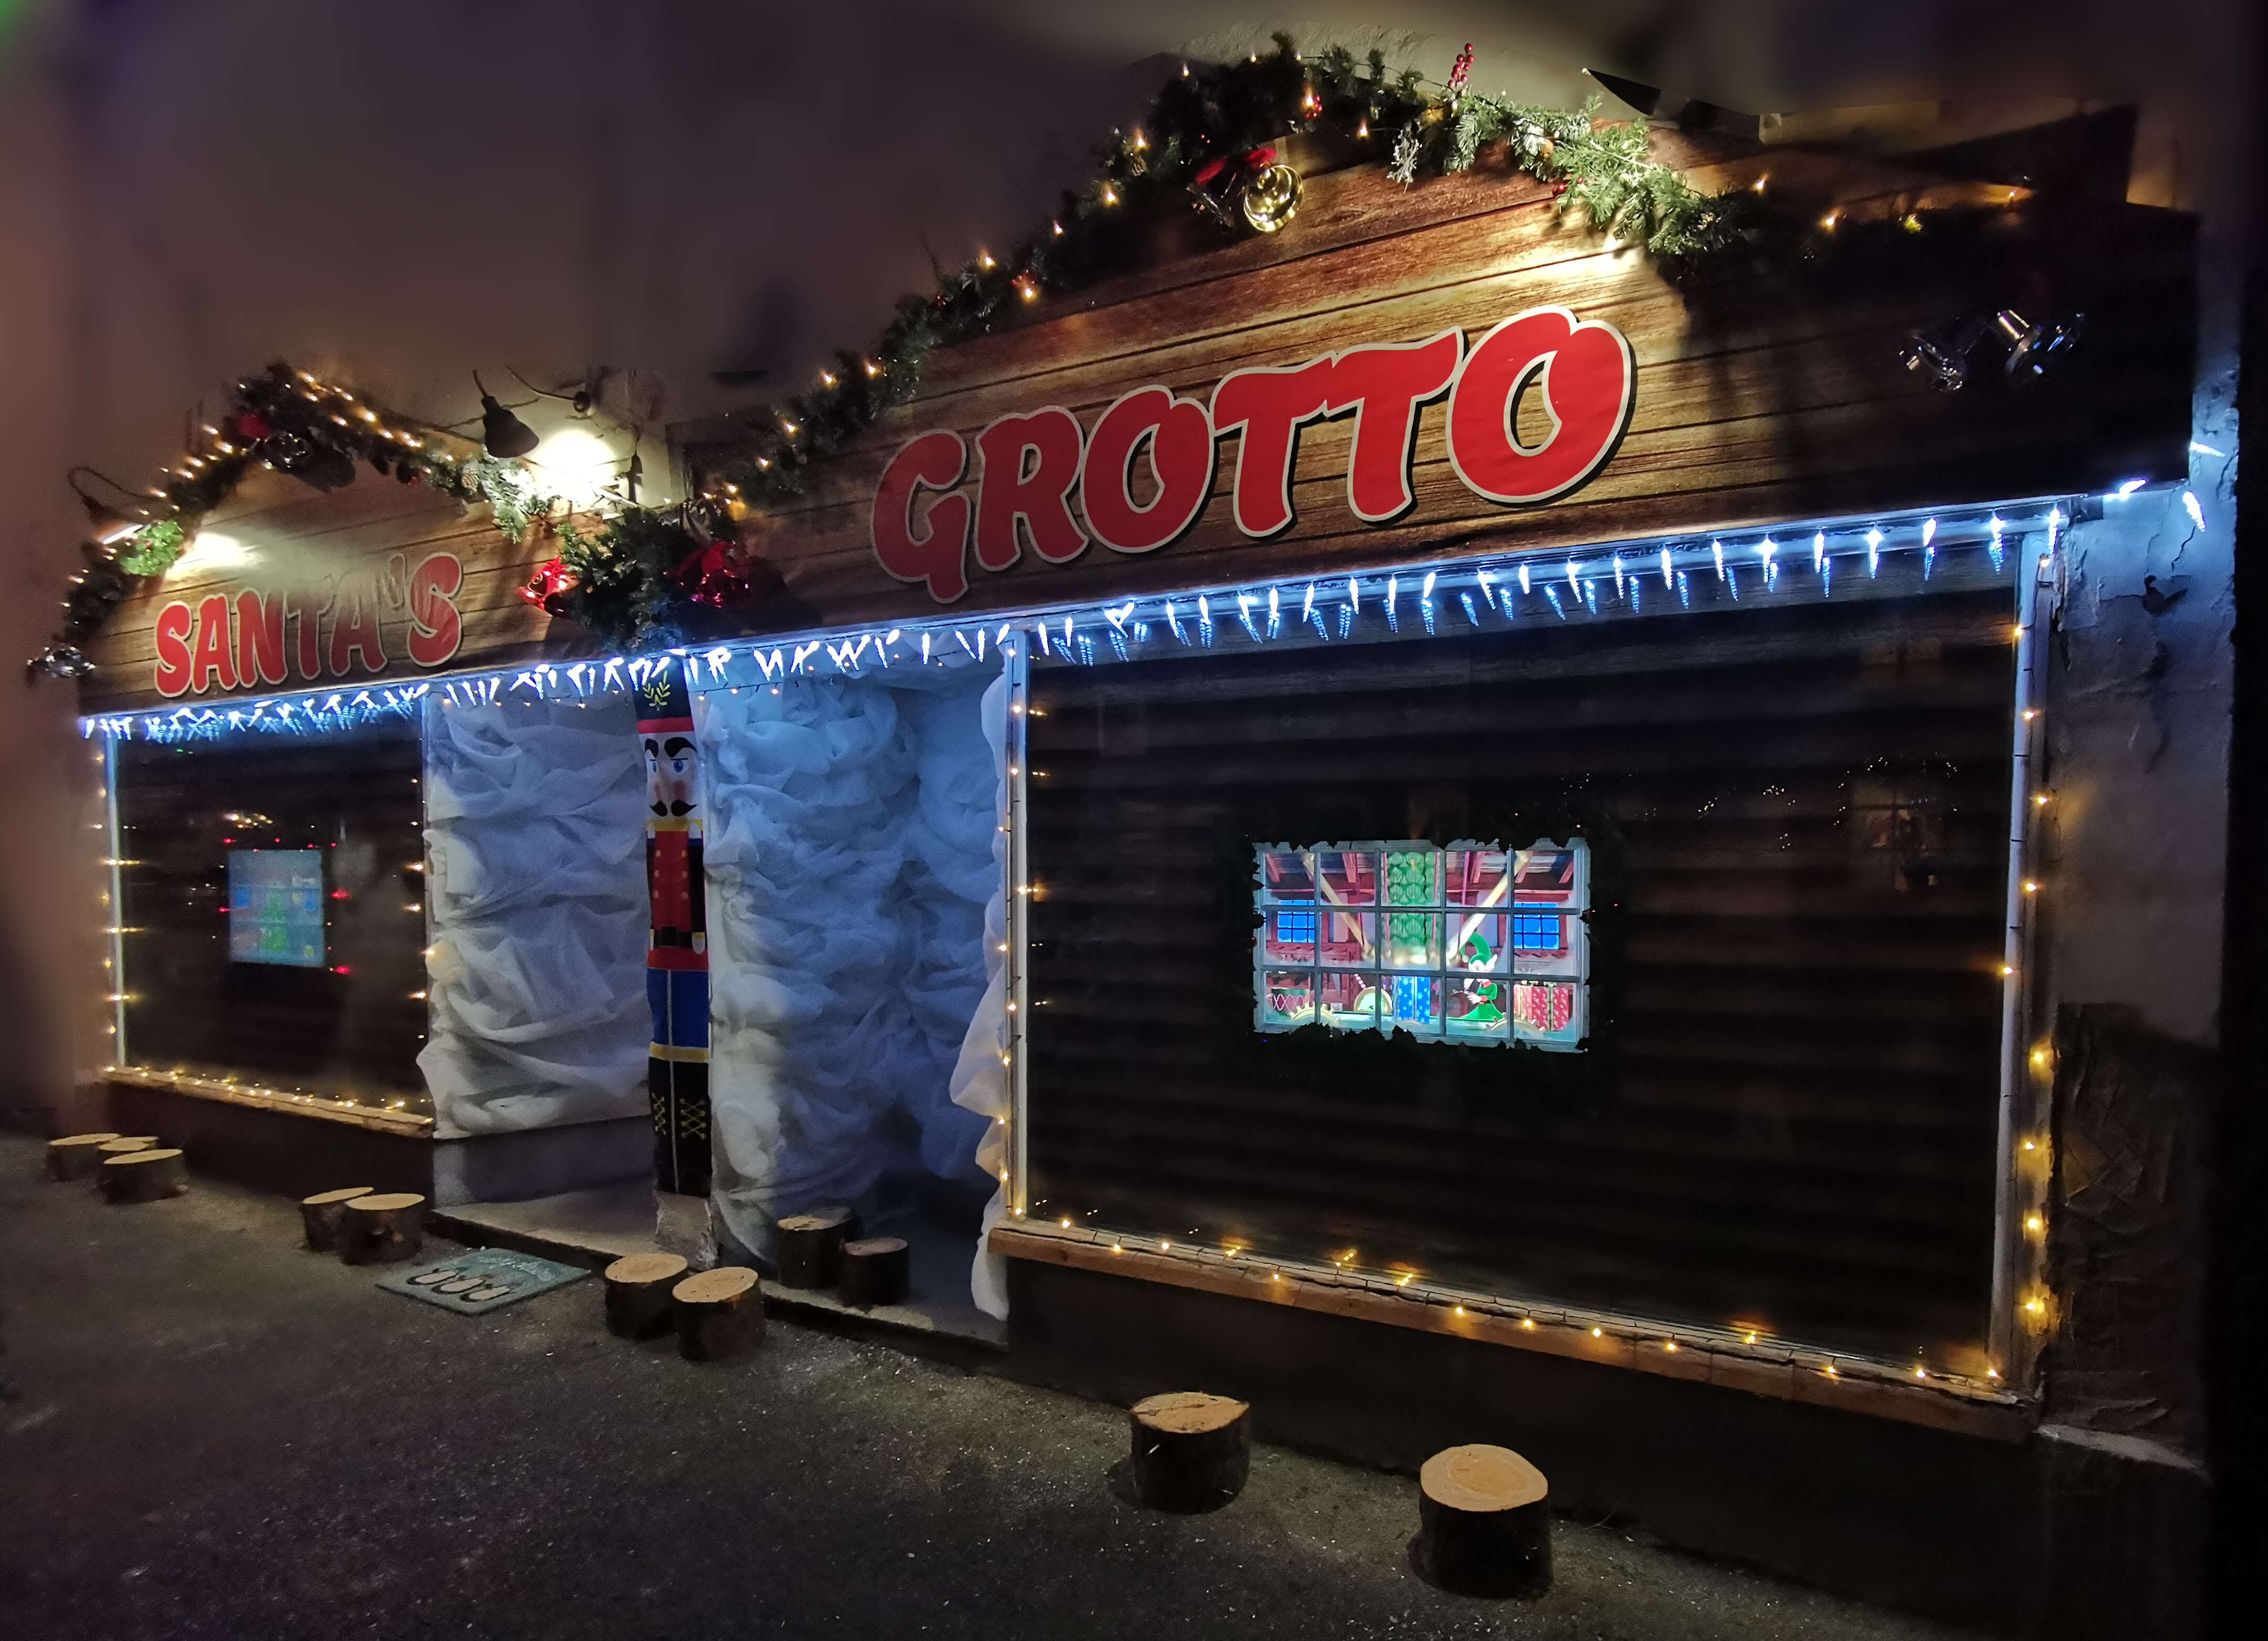 Amazing Santa's Grotto in Bridgnorth